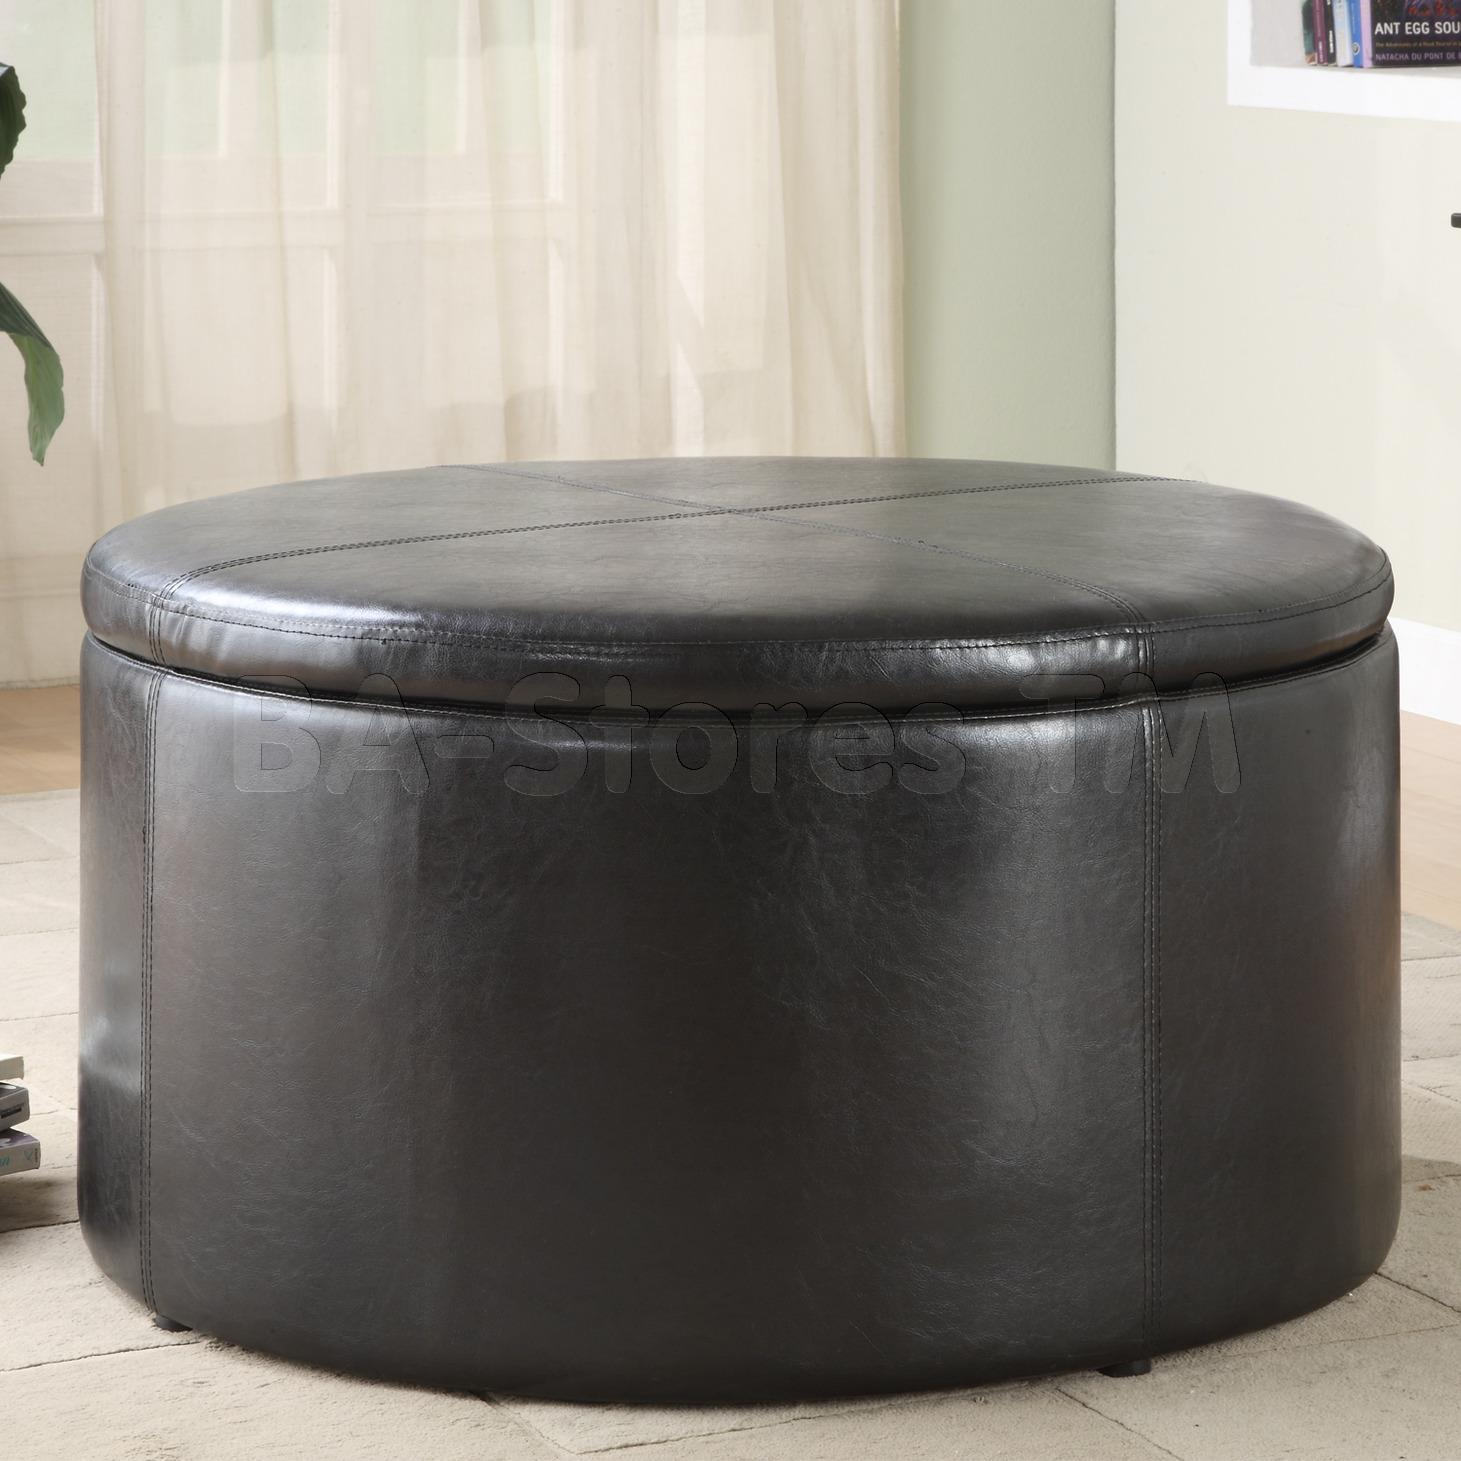 Maximizing Small Living Room Spaces Using Black Color Round Leather Ottoman Coffee Table Furniture Black Round Ottoman Coffee Table (Image 6 of 10)